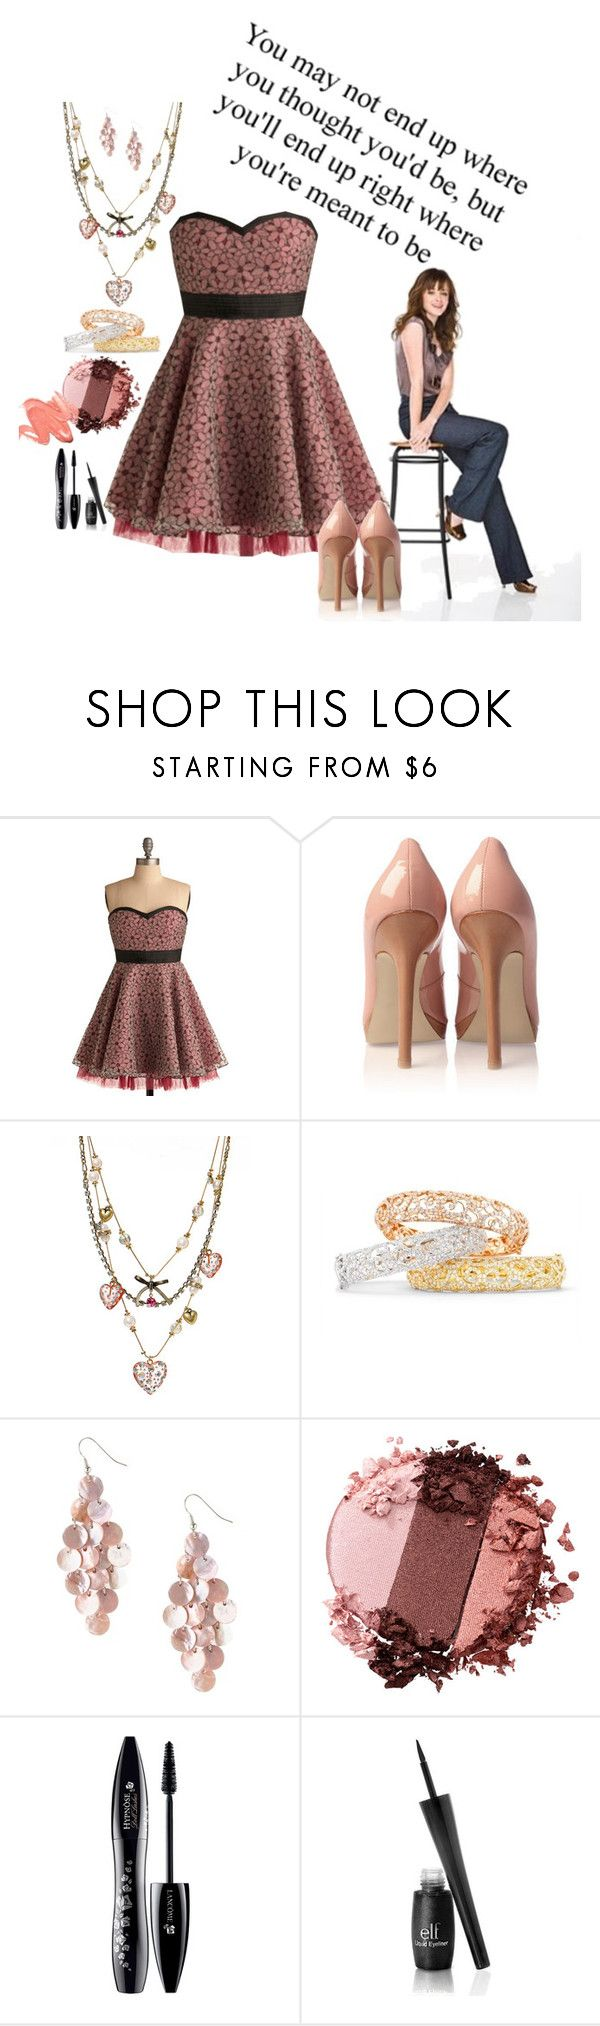 """""""Delta Dawn."""" by not-your-southern-bell ❤ liked on Polyvore featuring French Connection, Betsey Johnson, VIcenza, Stila, Lancôme and ELF Cosmetics"""